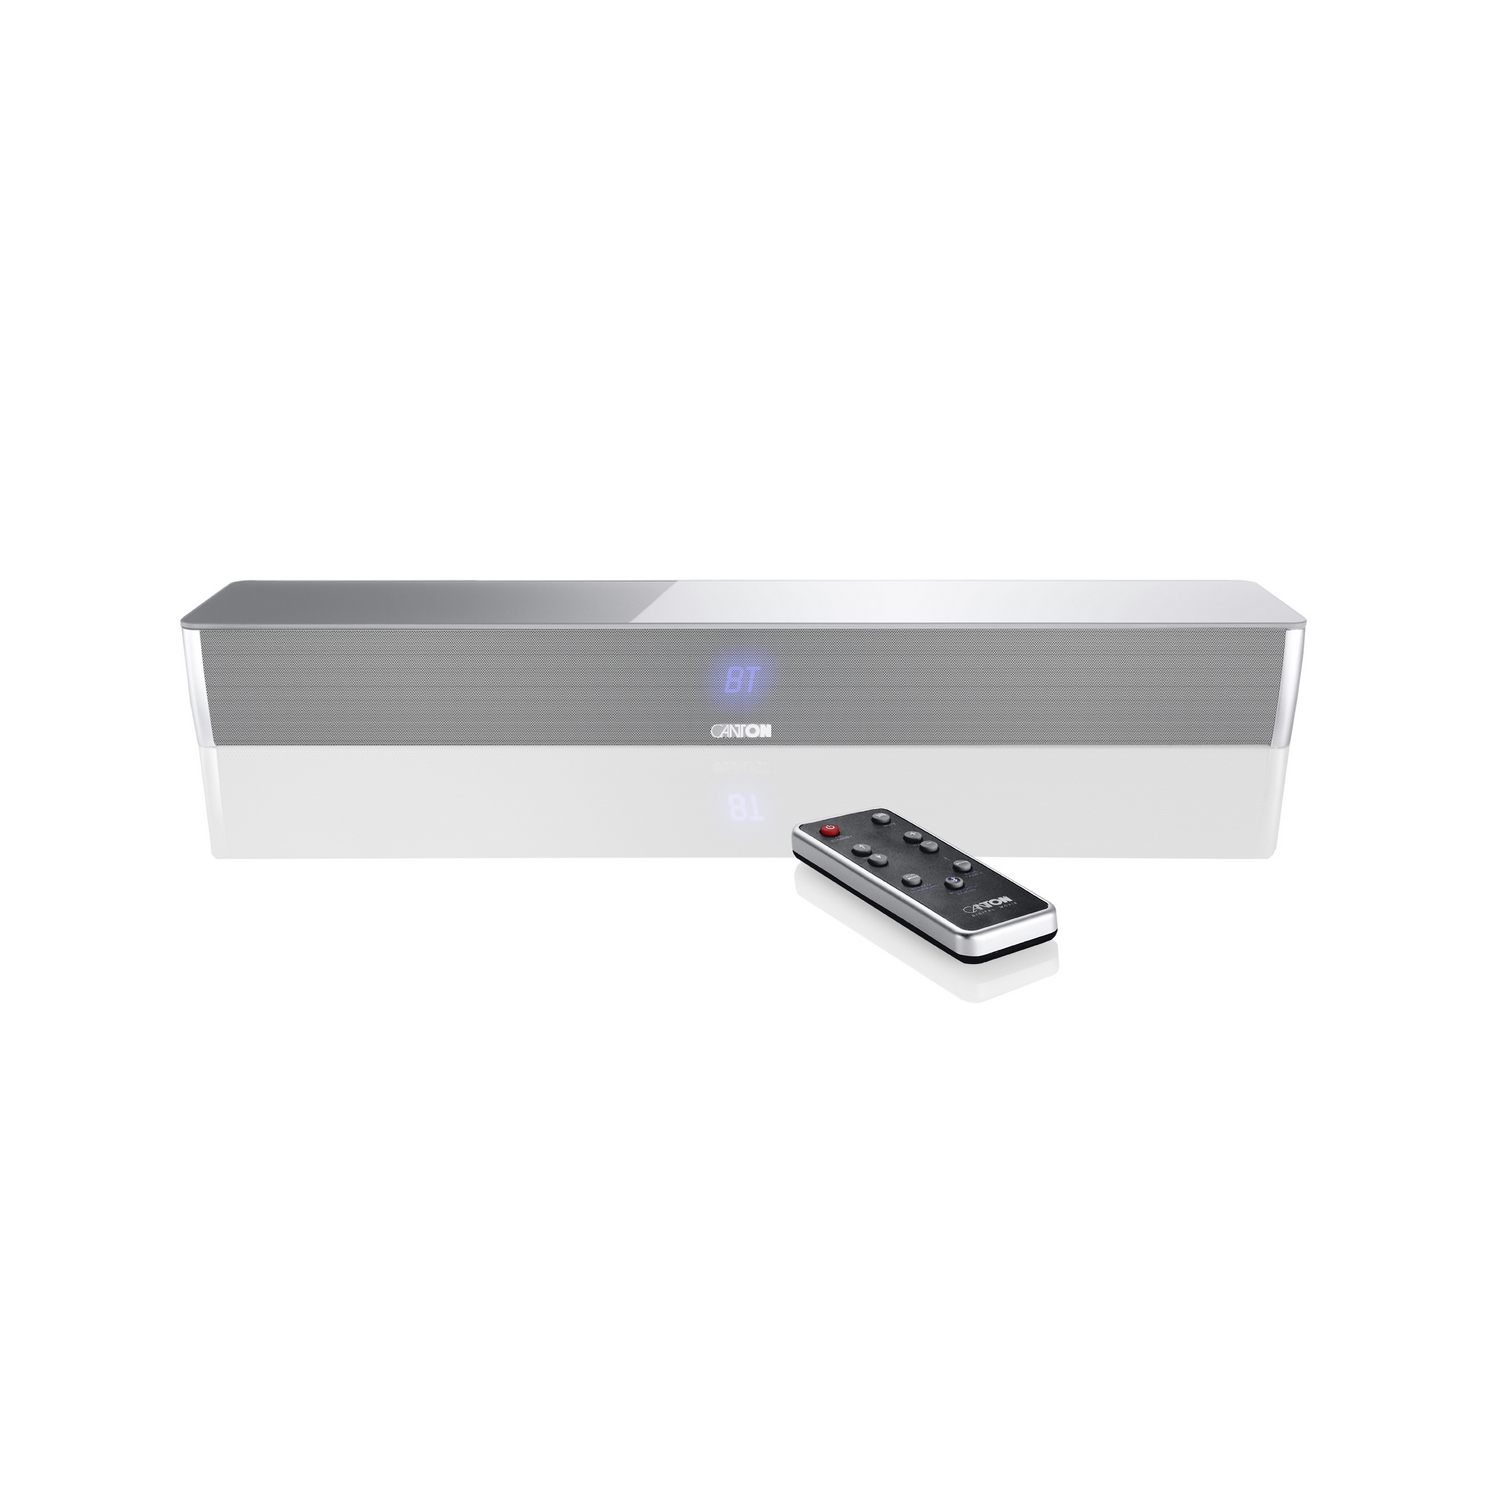 Canton DM 5 silber 2.1 VIRTUAL SURROUND-SYSTEM DM 5 2.1